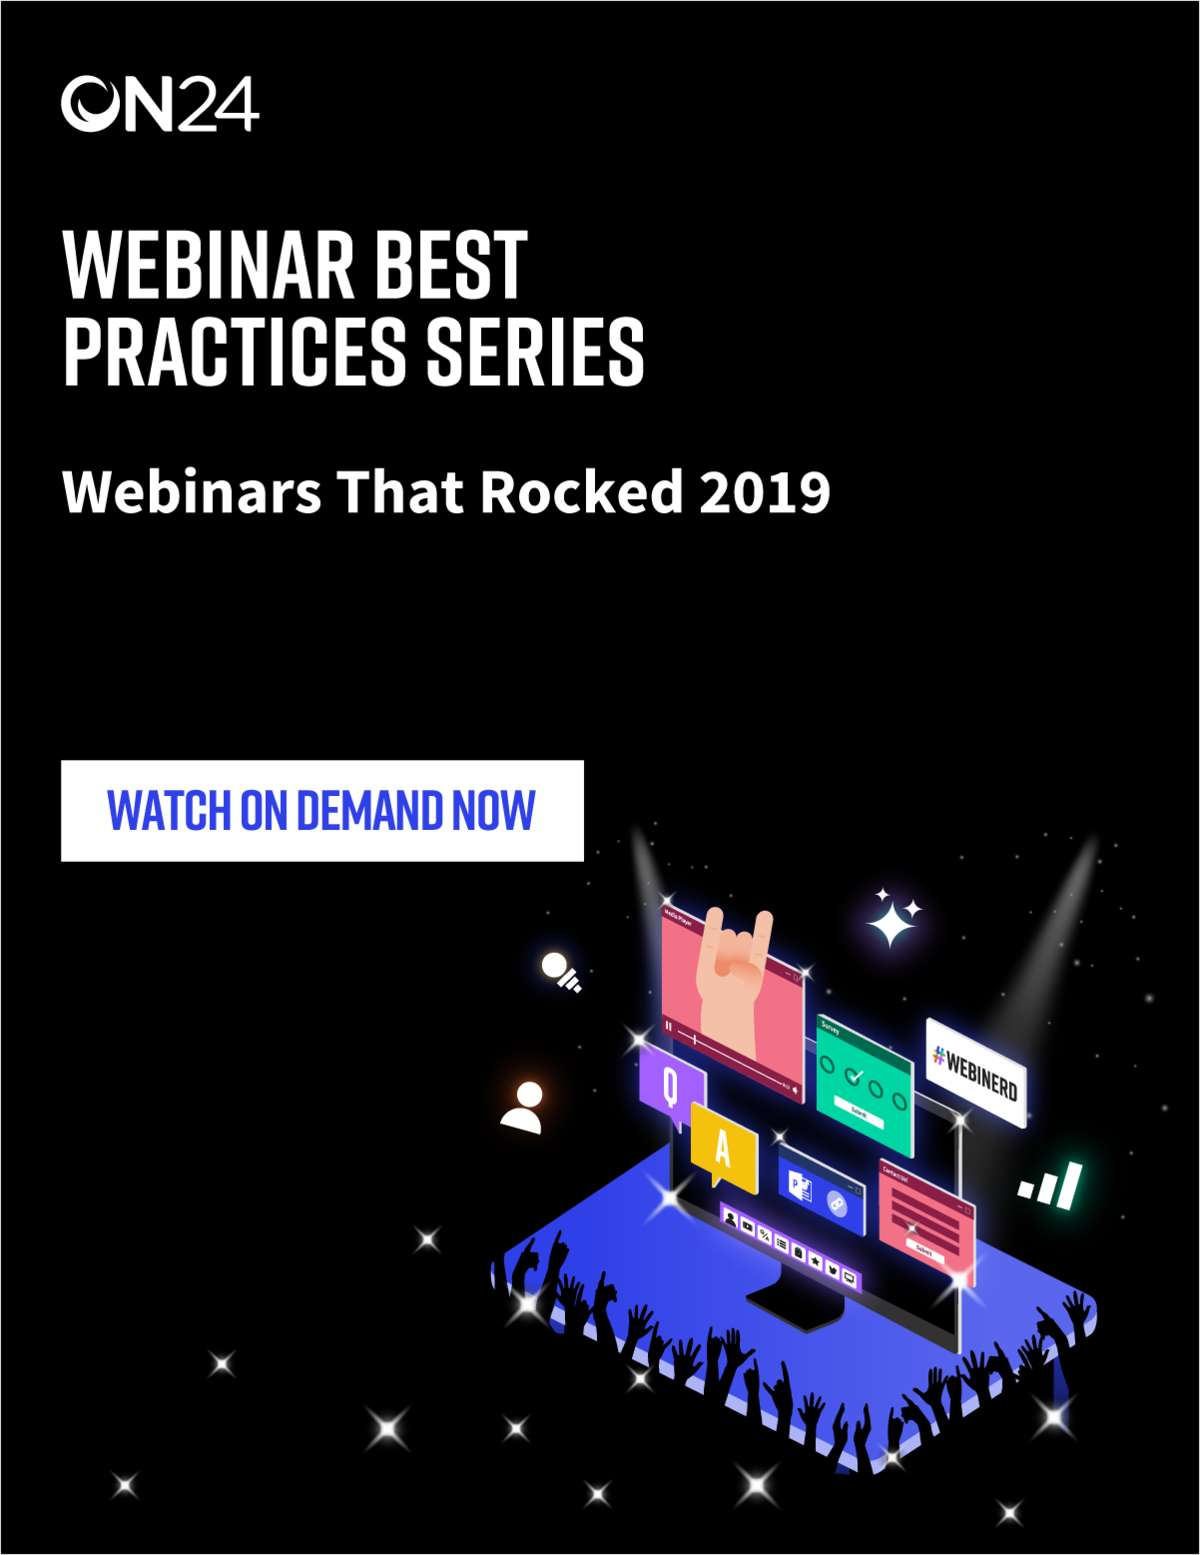 Webinar Best Practices Series: Webinars That Rocked 2019